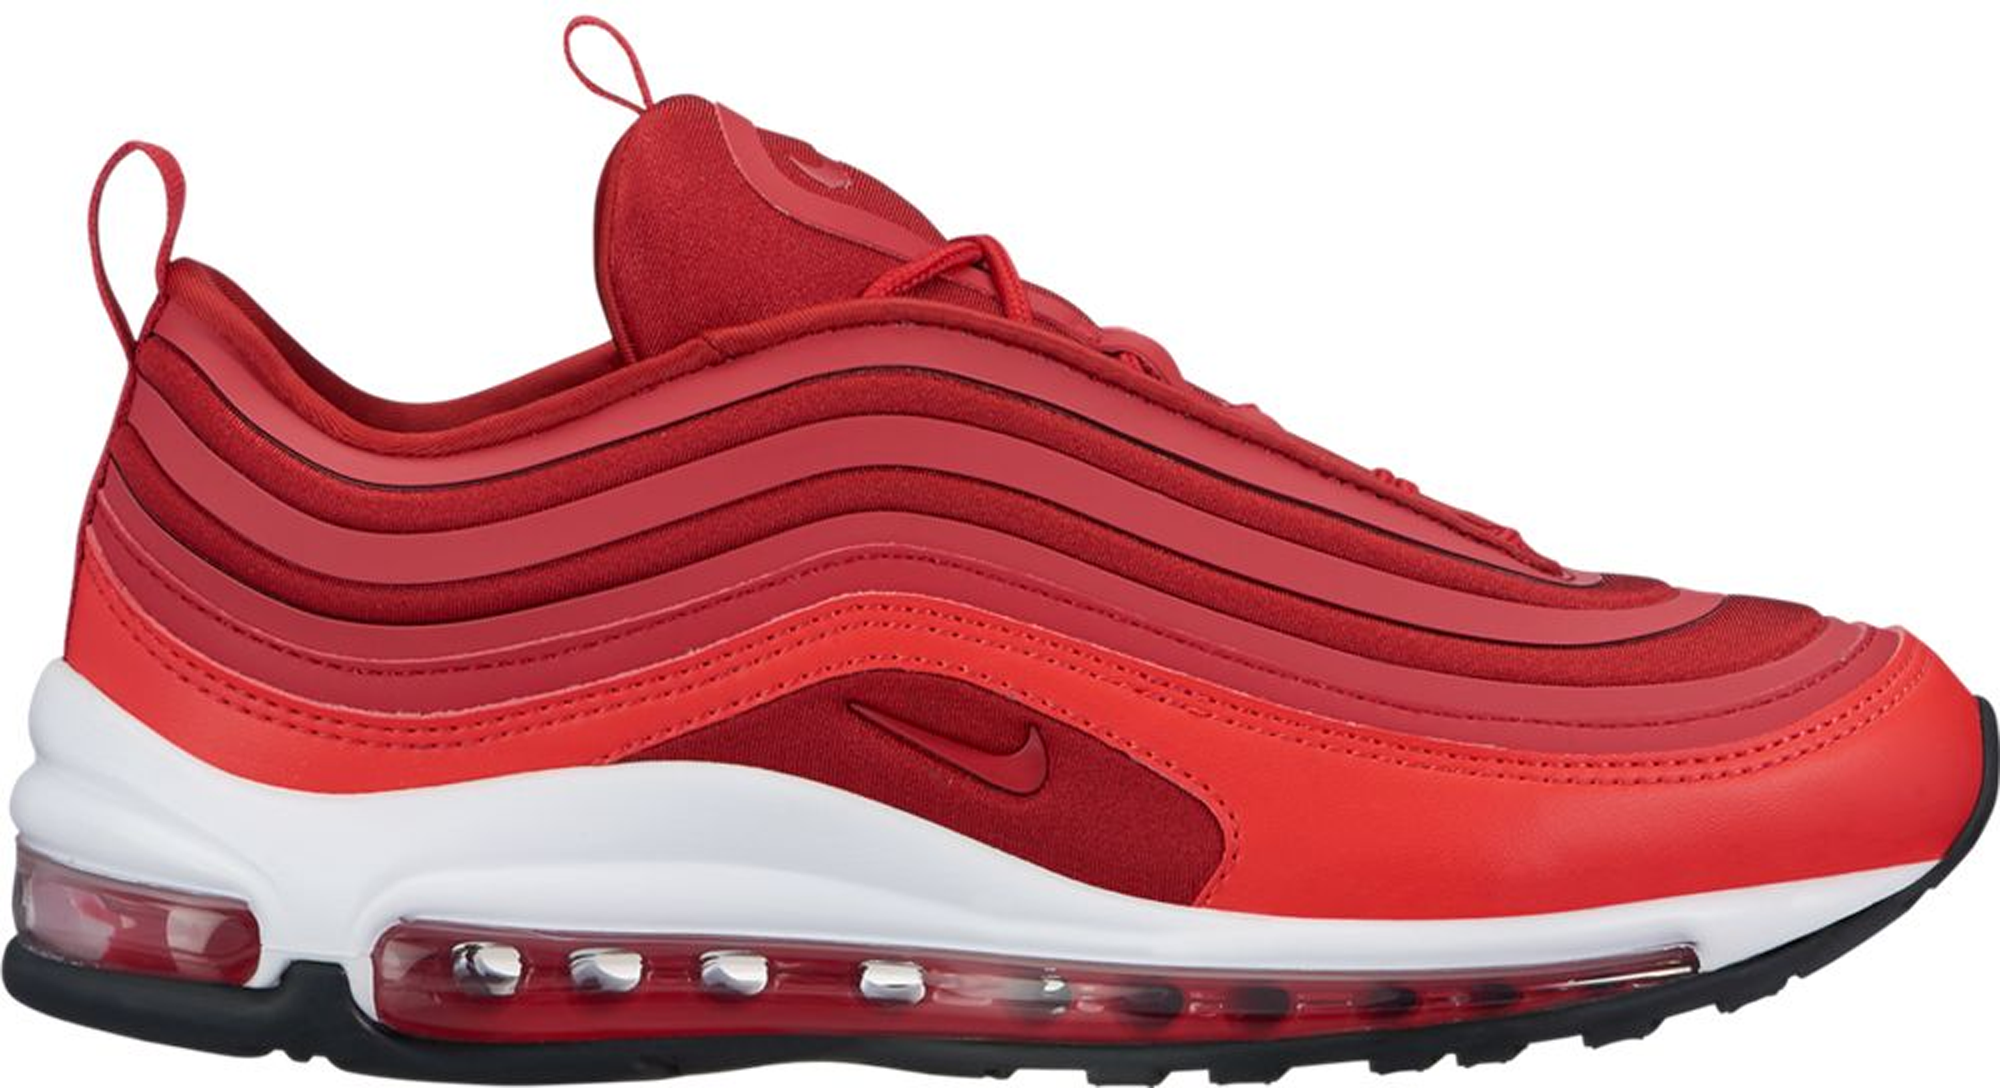 Air Max 97 Sport Ultra Femmes Rouges 1s